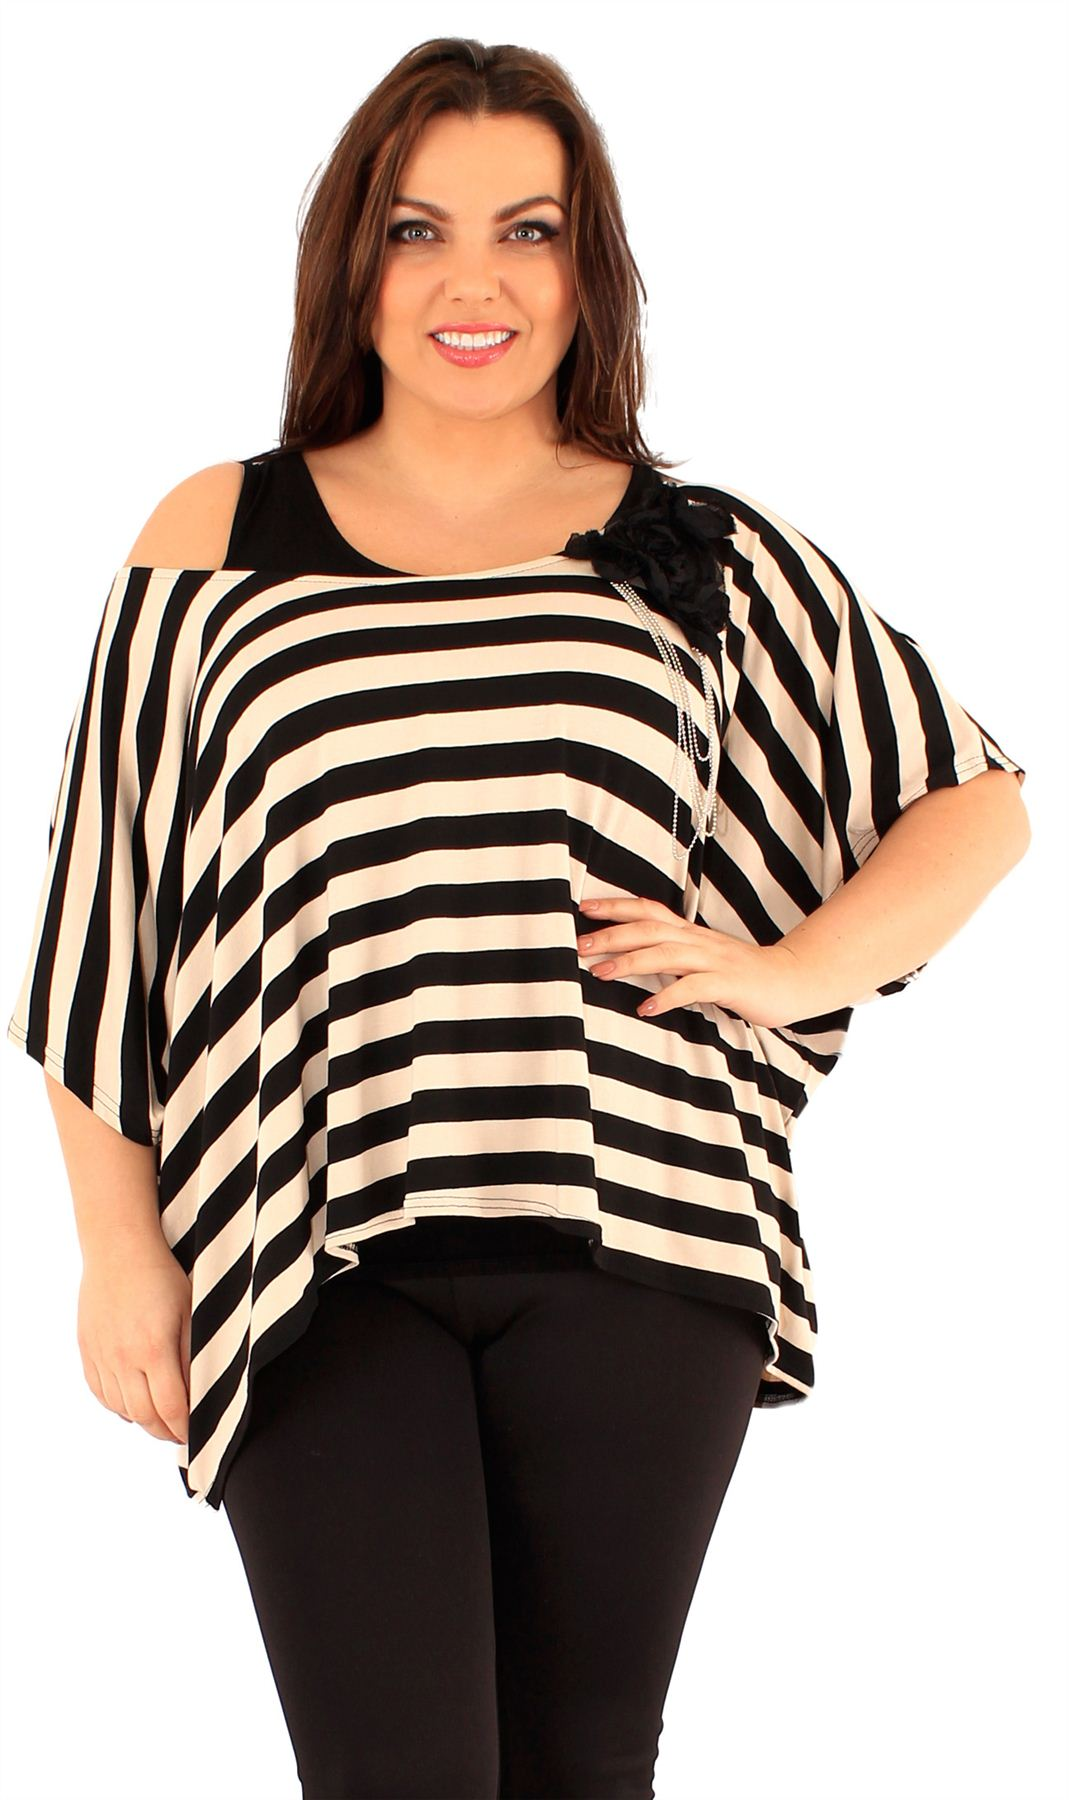 Take it to the Top - %color %size Tops for Women. Newsflash: a great outfit starts at the very top. And no matter what it is you're searching for - a comfy sweater, tried-and-true tee, or flirty blouse - we've got the one to start (and finish) your look.